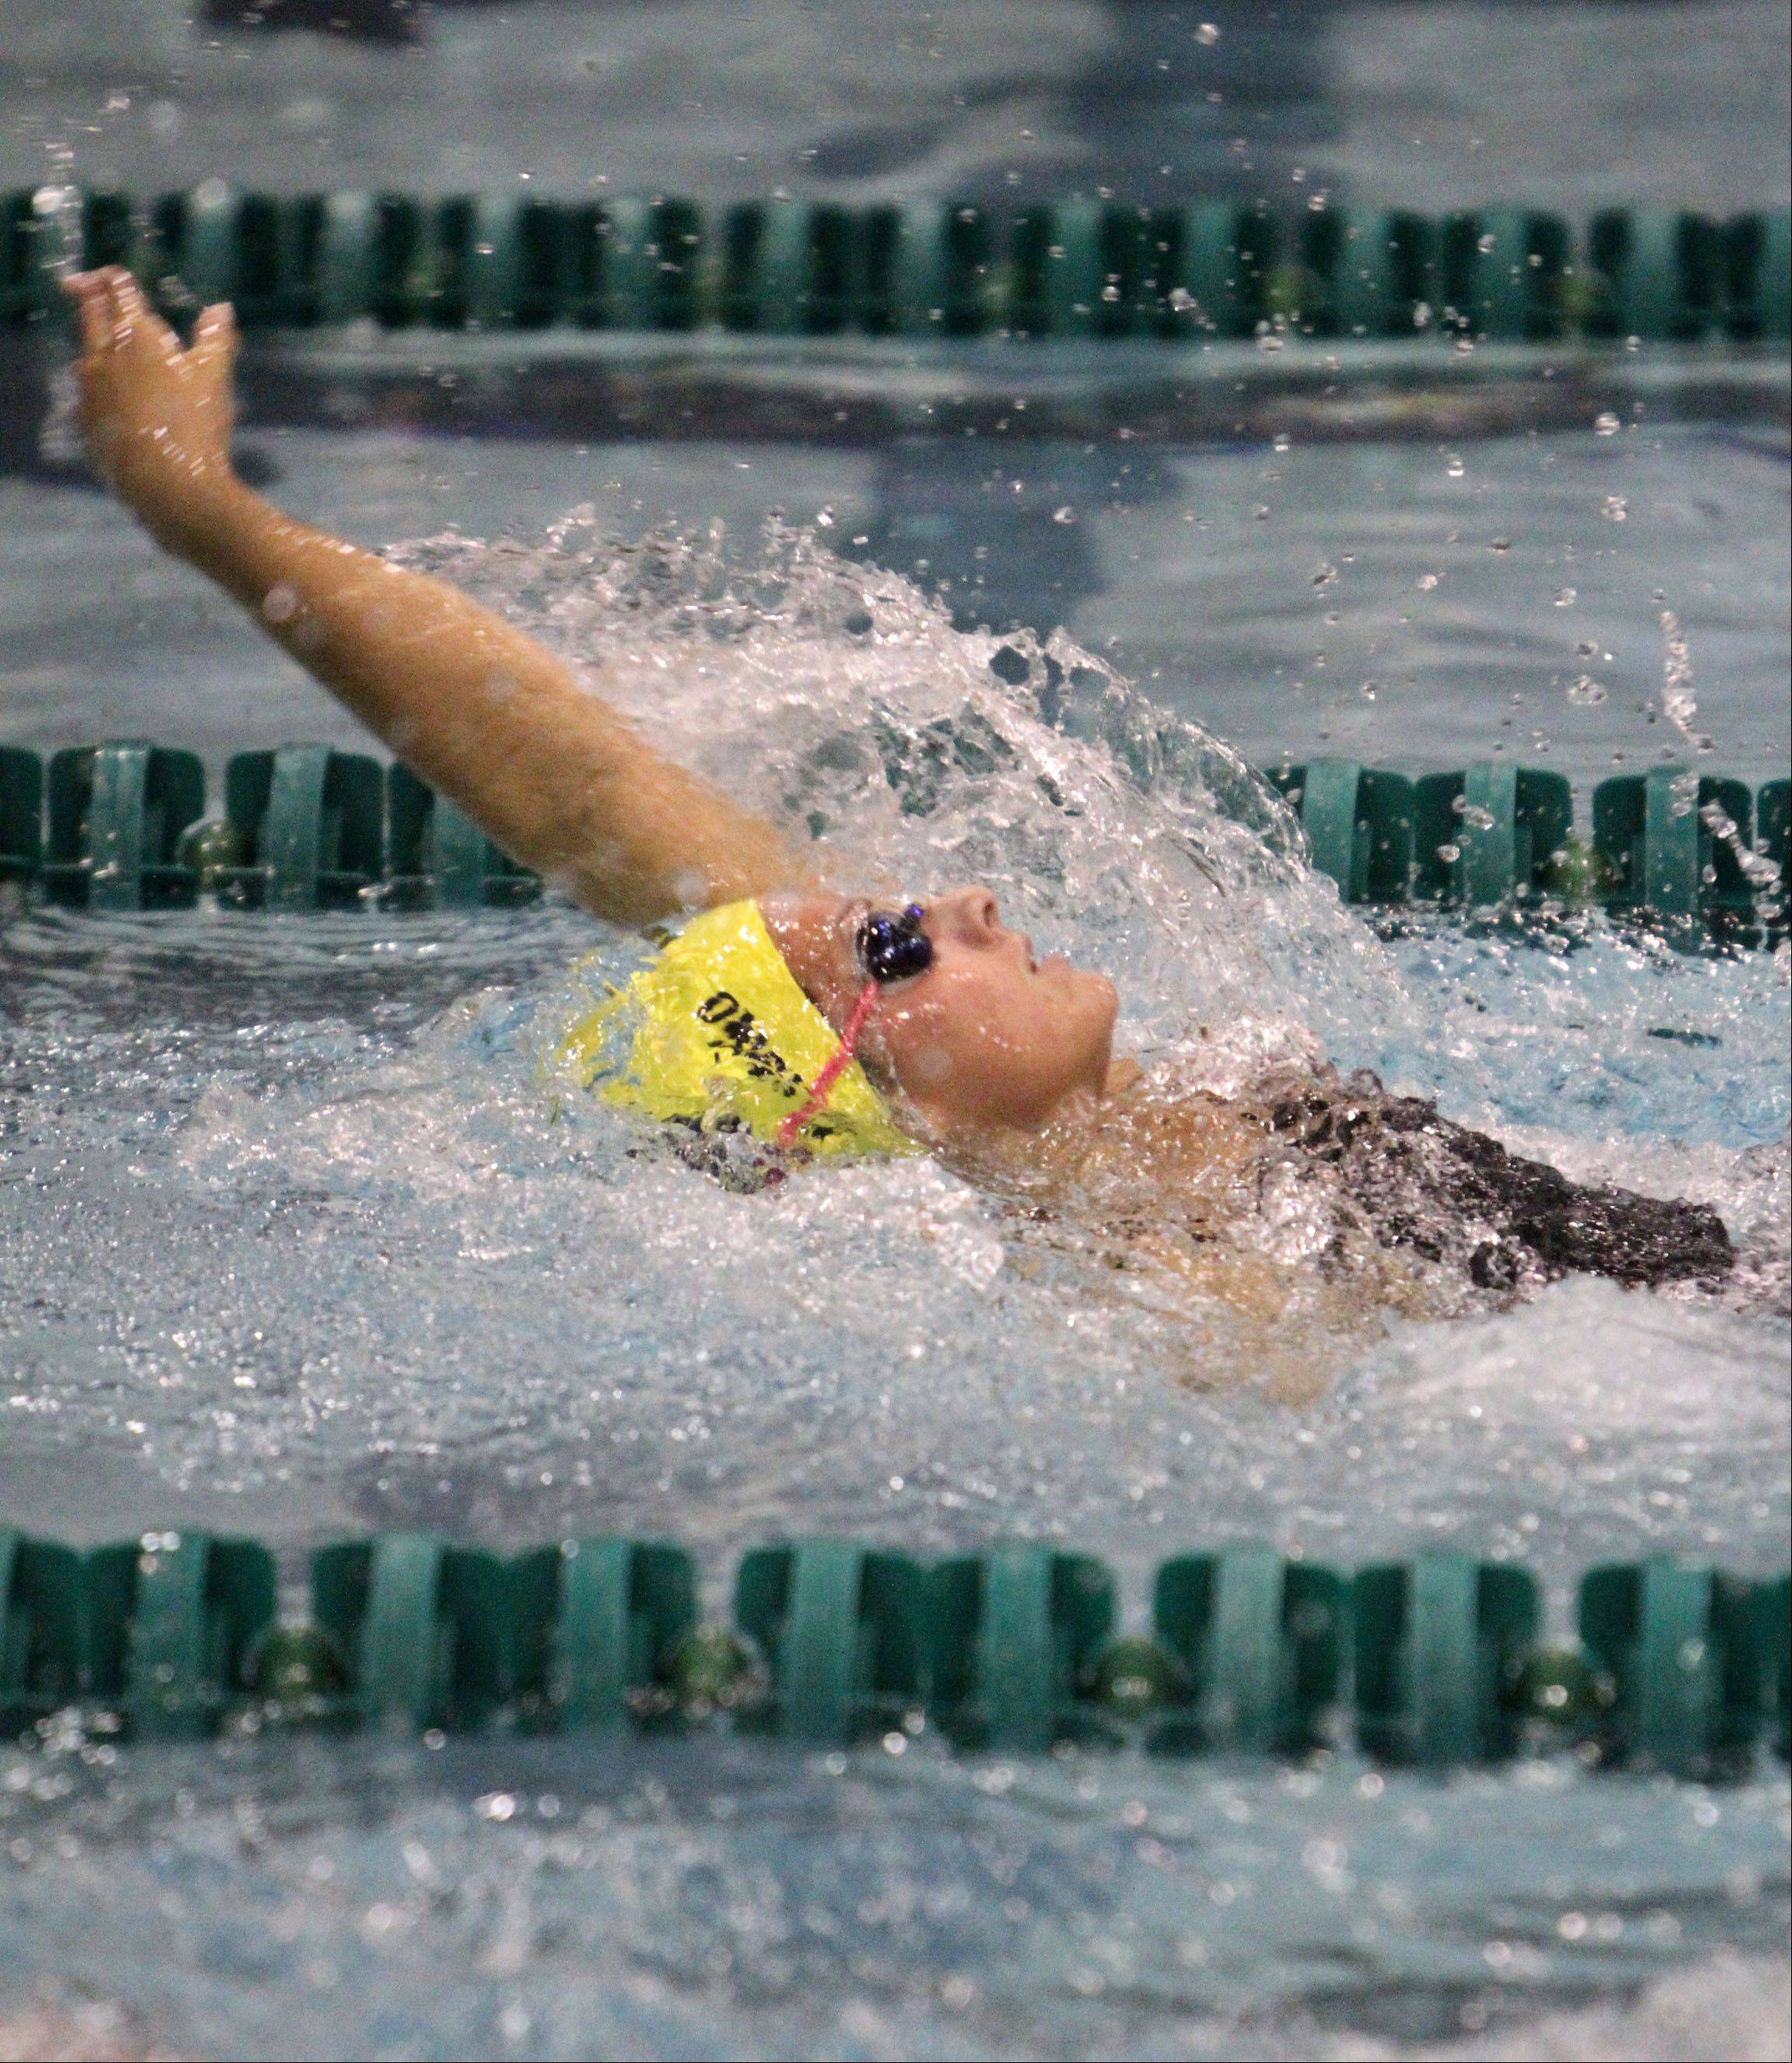 Neuqua Valley's Gia Dalesandro competes in the 100-yard backstroke at the IHSA state final preliminaries in Winnetka on Friday, November 18th.